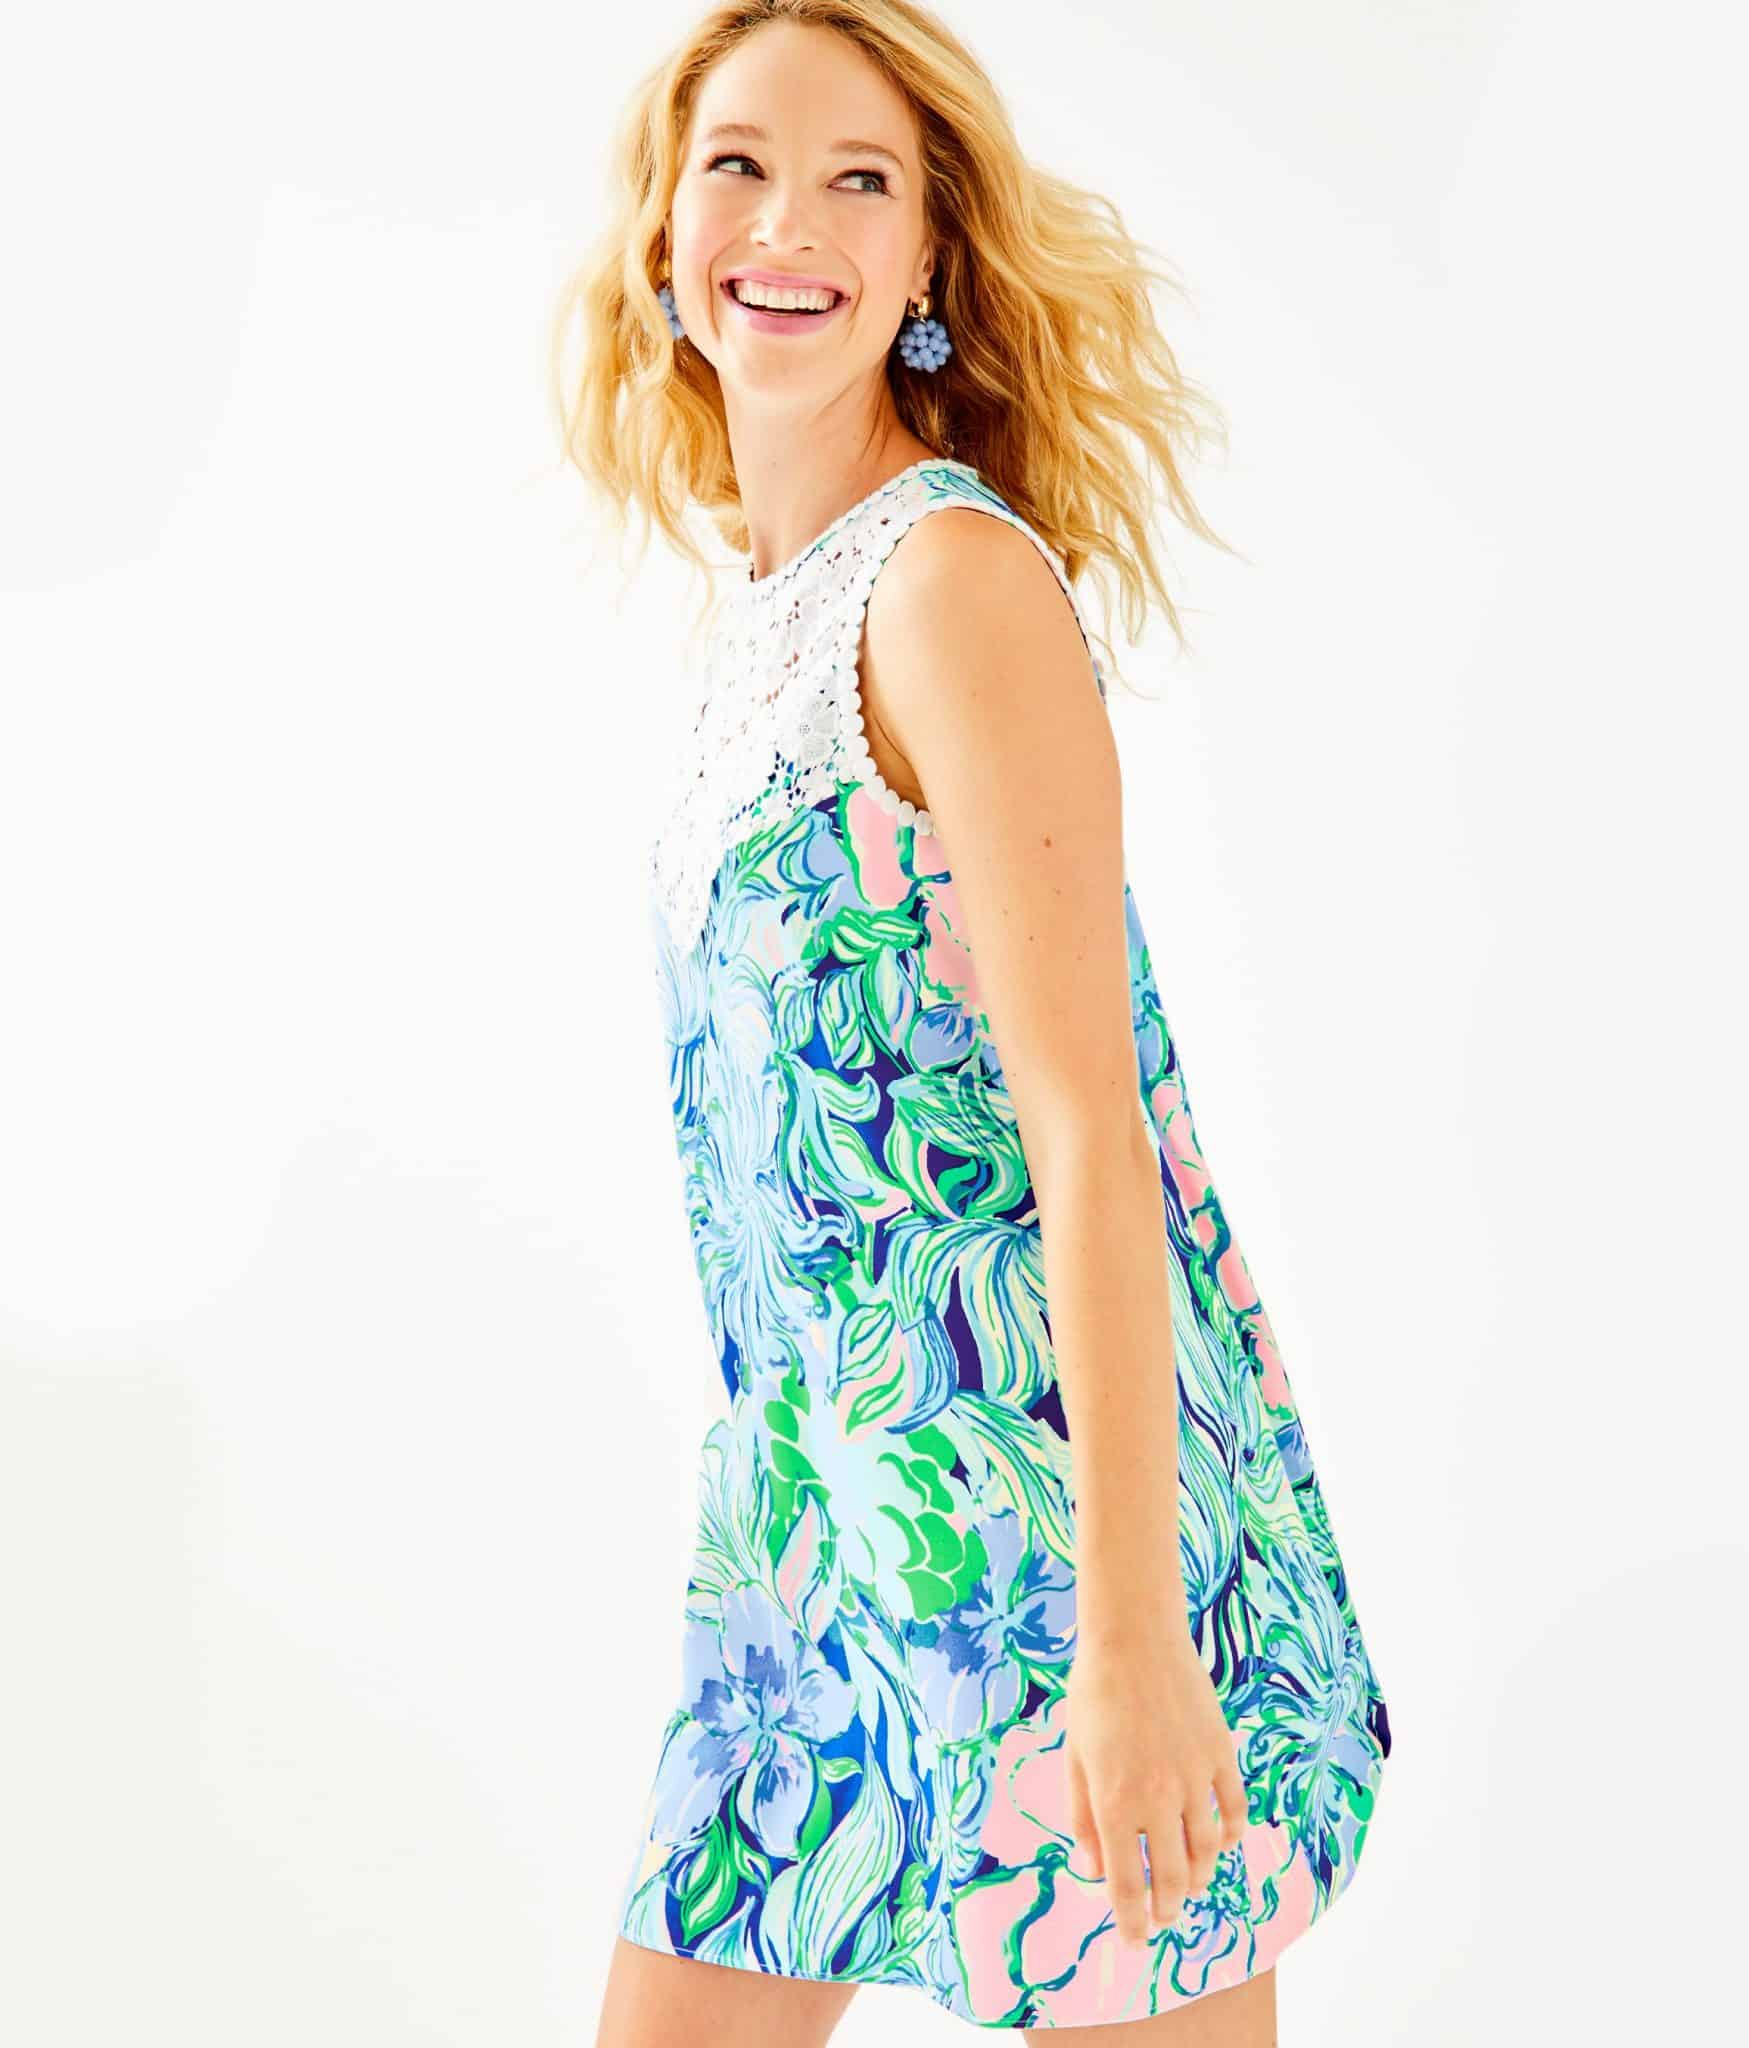 Lilly Pulitzer After Party Sale favorites featured by top US fashion blog, Glamorous Versatility: image of Lilly Pulitzer Nala swing dress